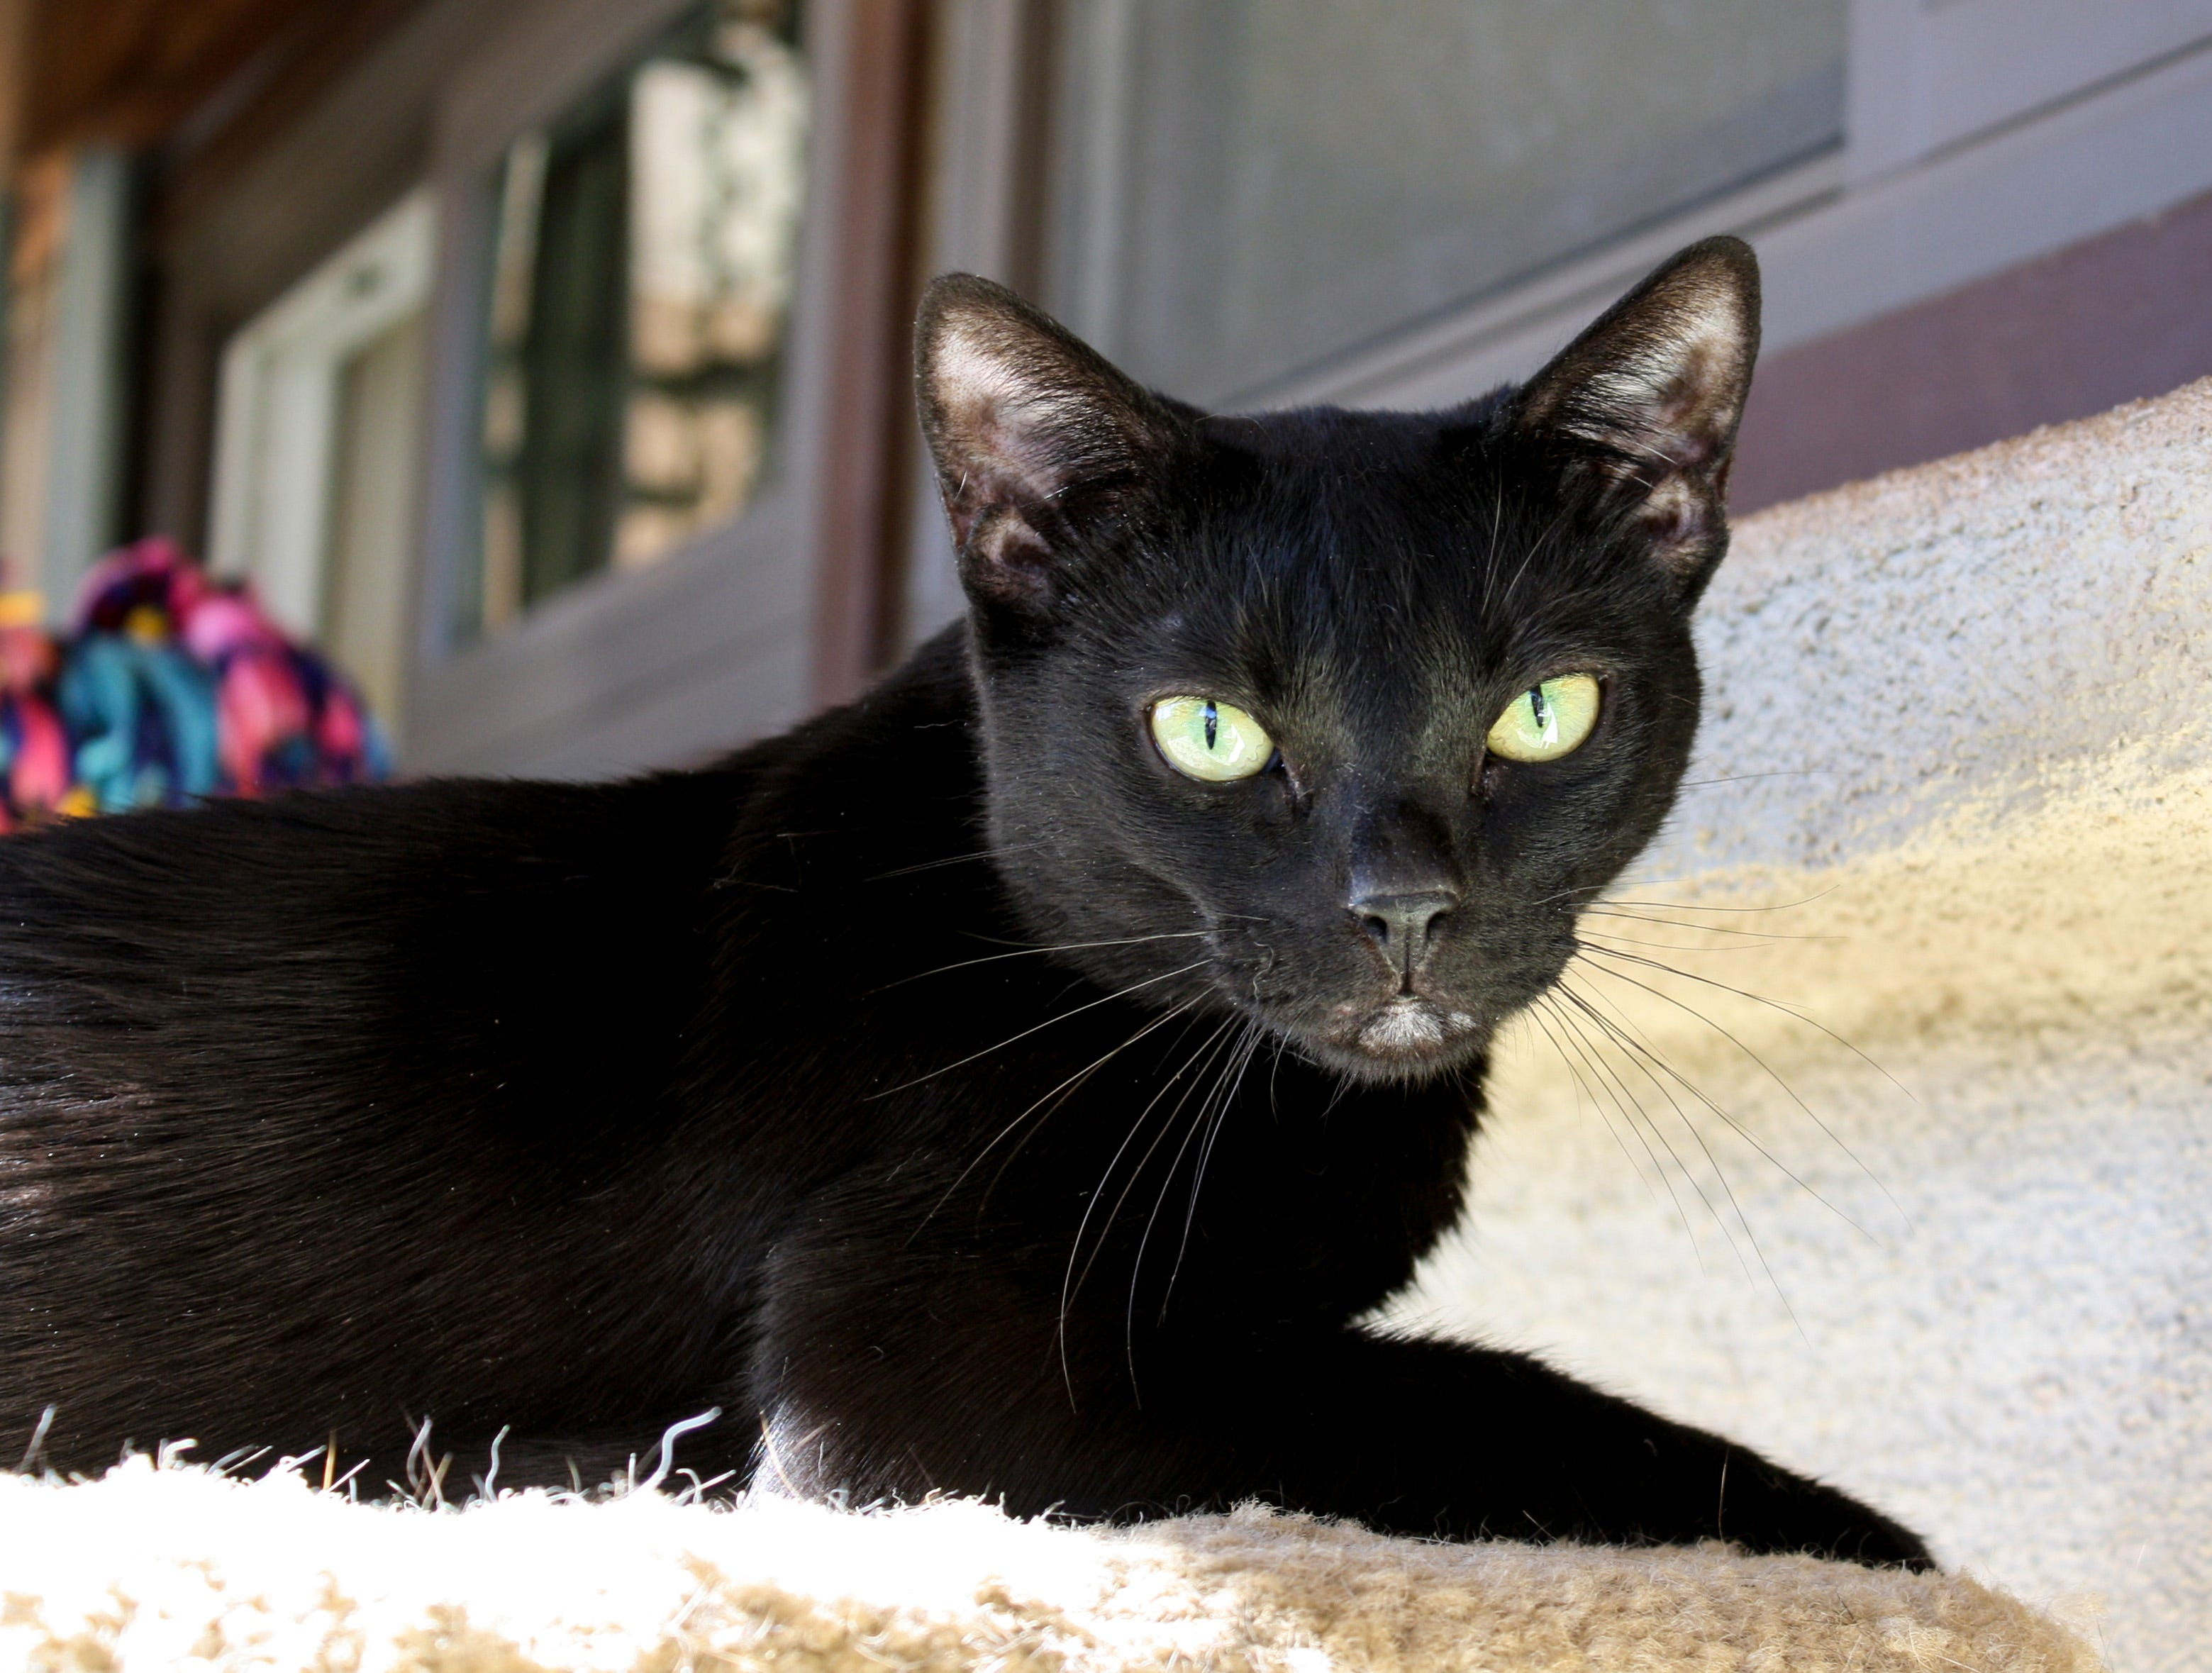 Shadow is a charming adult cat. She lives peacefully in the animal shelter's cat room with no problem. Shadow is spayed and always remembers to useher litter box. Her favorite thing to do is to relax on the cat tree. She would do best in a low- to medium-energy home.You can meet Shadow at the Humane Society of Ventura County in Ojai. Her discounted adoption fee of $75 includessterilization, vaccinations, microchip implantation, free veterinarian visit, feline leukemia test,ID tag and aloving new family member.For more information on Shadow or other available animalsor to volunteer, please call 805-646-6505 or visit www.hsvc.org. The shelter is at 402 Bryant St.,Ojai. Hours are 10 a.m. to 5 p.m. Monday through Saturday.